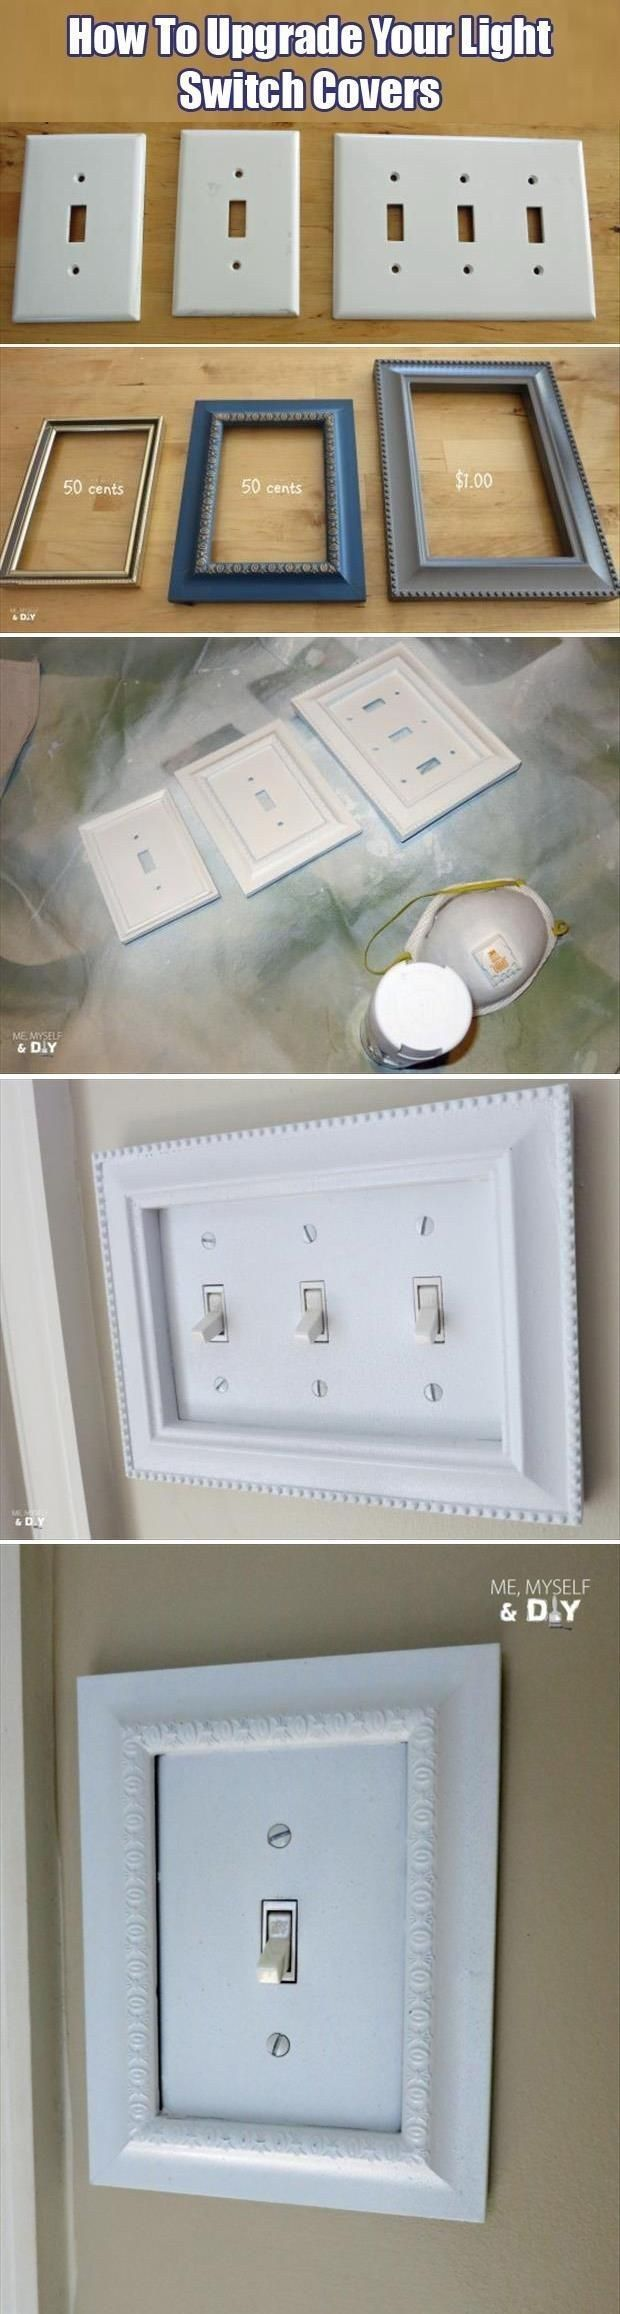 Bathroom Lights Make Me Look Ugly best 20+ ceiling light covers ideas on pinterest | lamp cover